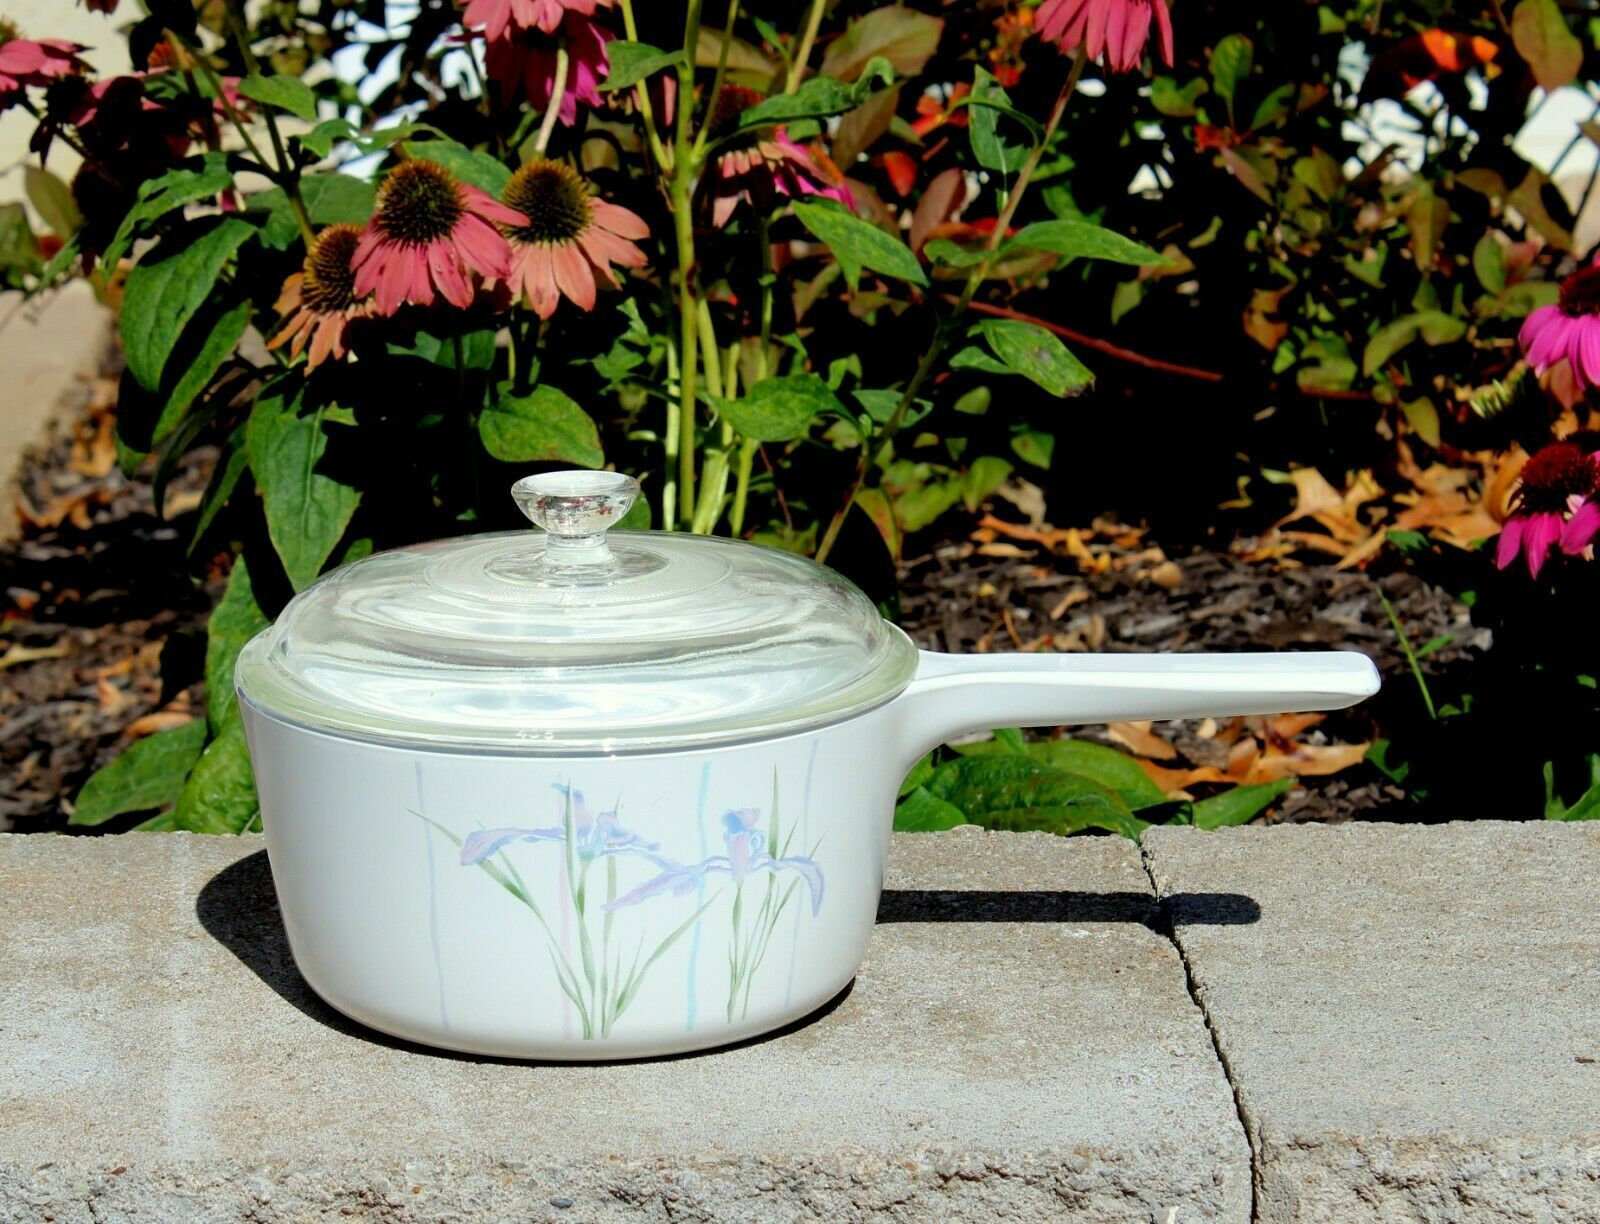 Primary image for Vintage Corning Shadow Iris Menuette Saucepan and Lid No. S-1.5-B -1.5 L/1.5 Qt